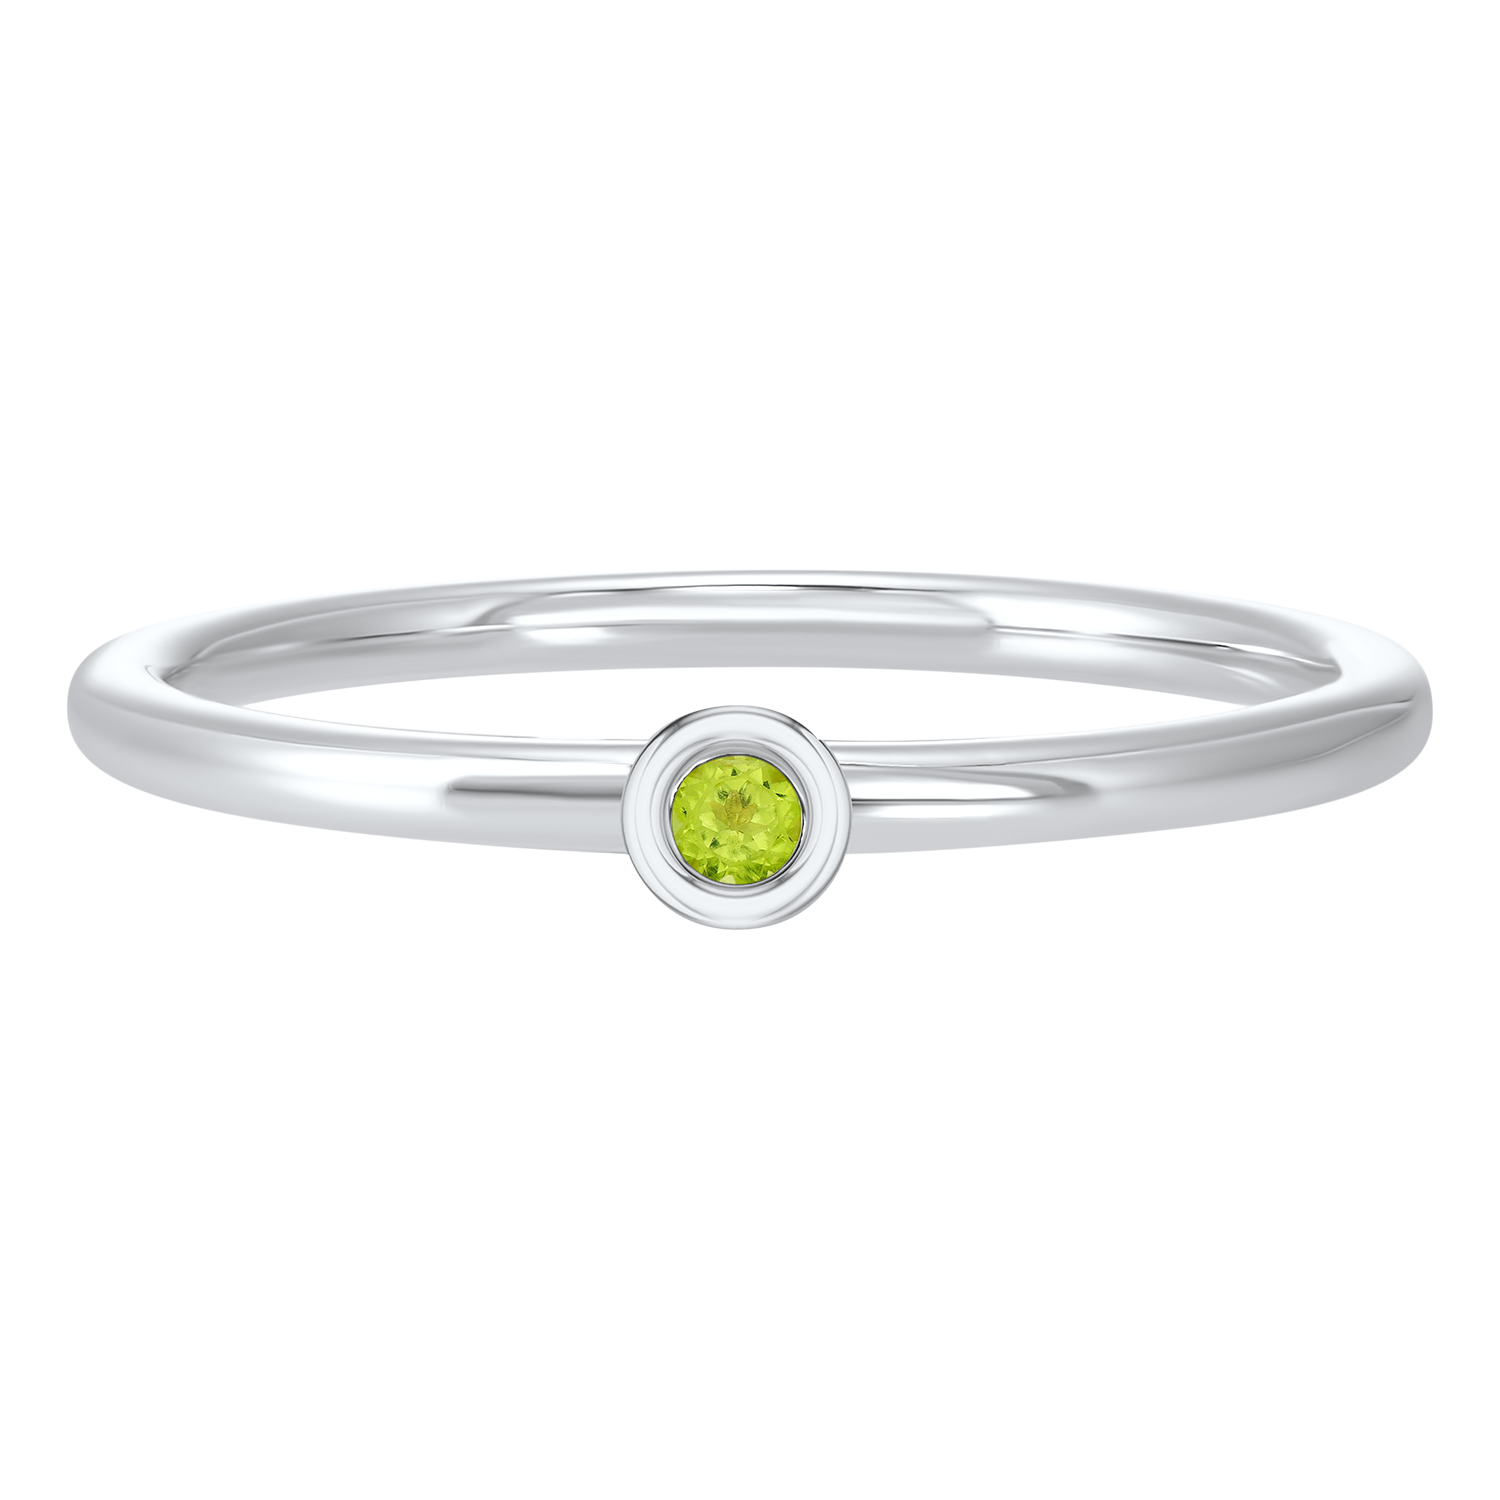 10K White Gold Stackable Bezel Peridot Band Moseley Diamond Showcase Inc Columbia, SC